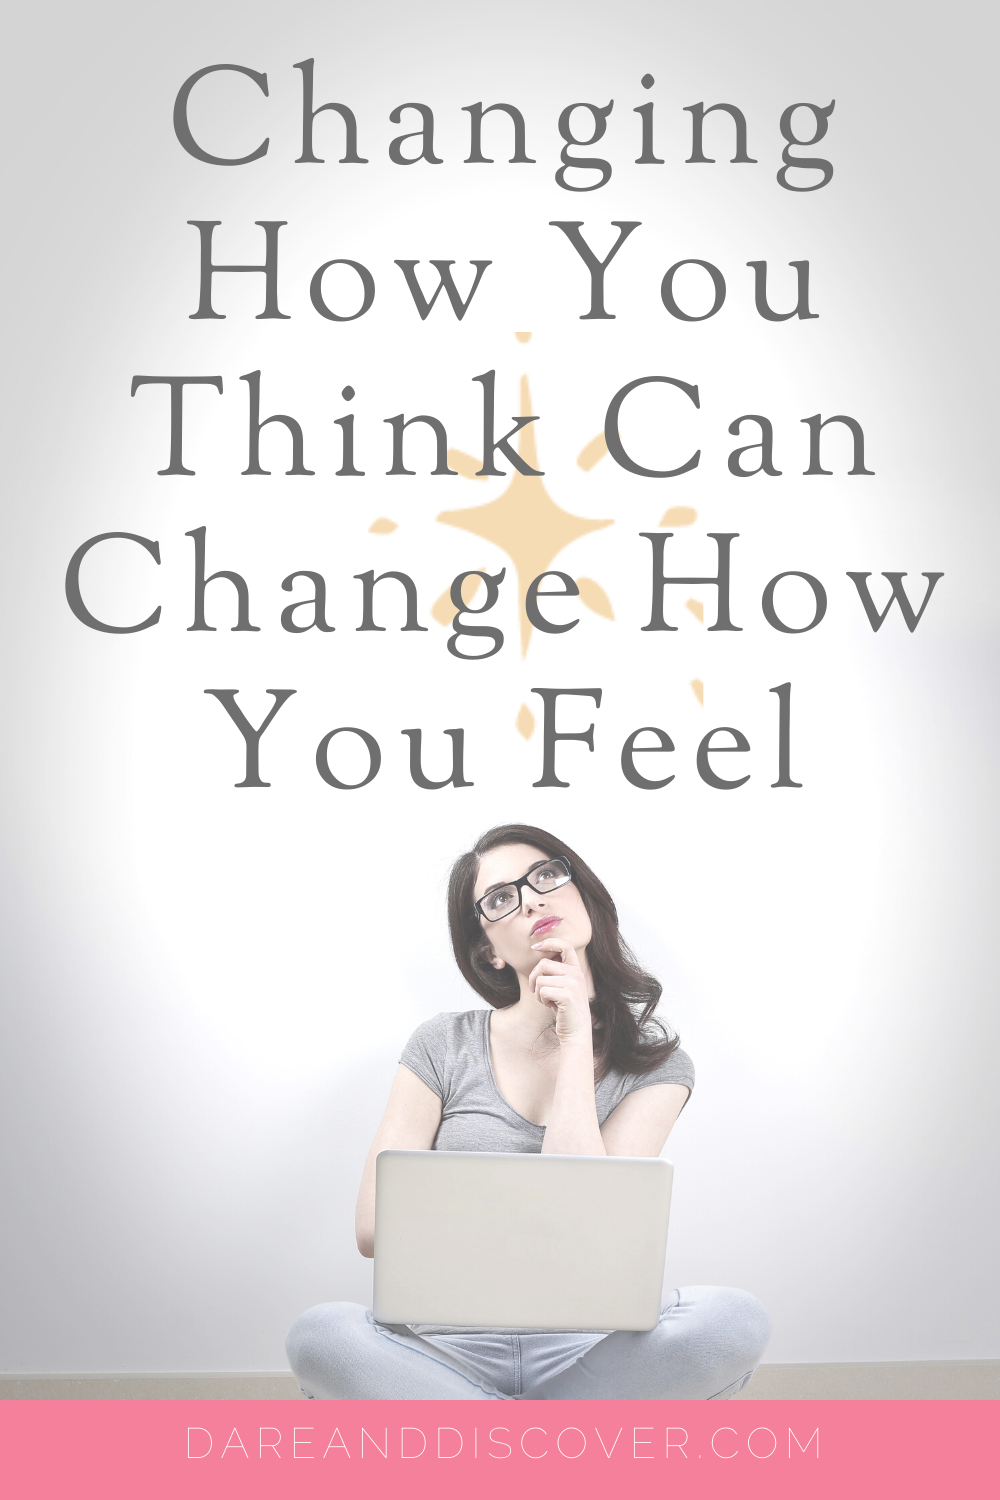 In Cognitive Behavioural Therapy, it's proposed that changing how you think can change how you feel. The mind is a powerful force that we should use for our benefit! If we can change how we think it can help motivate us to do the things we're passionate about. Don't let fear hold you back, change how you think and that can help to get rid of the fear! | Thoughts And Feelings | CBT | Negative Thinking | #ThoughtsAndFeelings #CBT #NegativeThinking